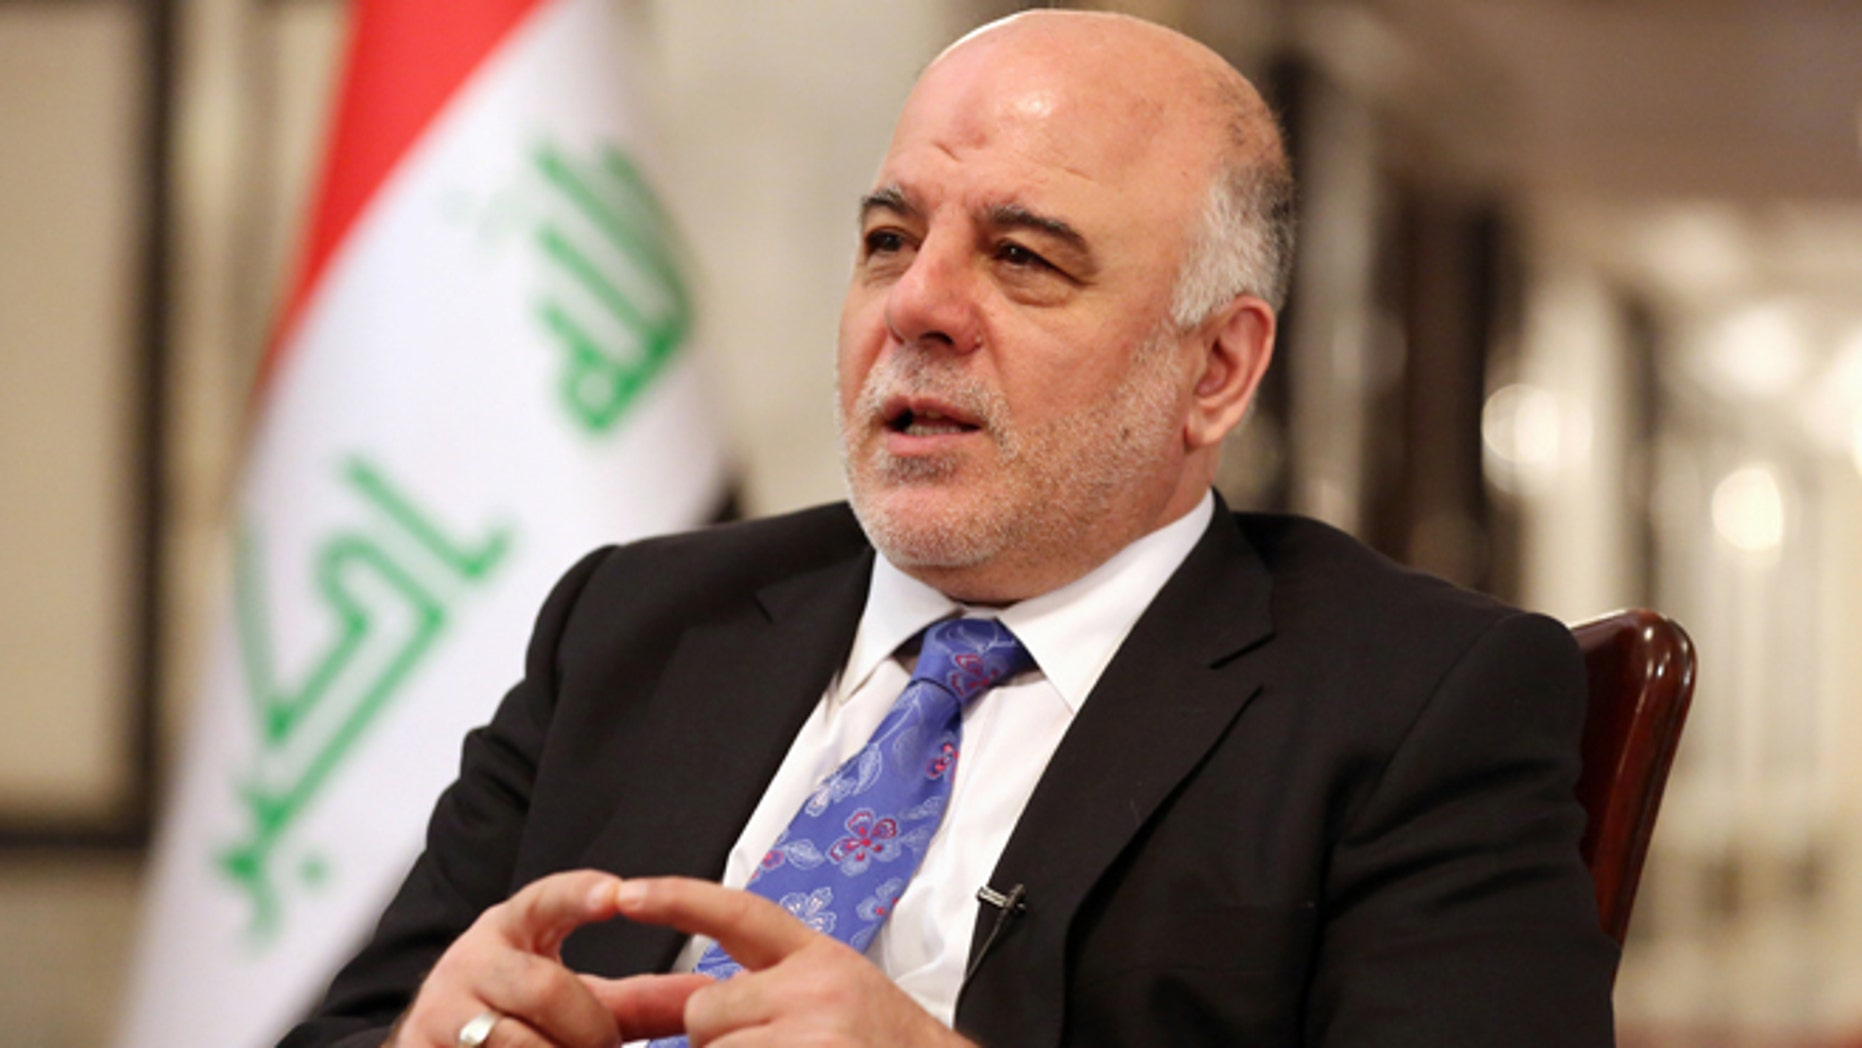 Sept. 17, 2014: Iraq's Prime Minister Haider al-Abadi speaks during an interview with The Associated Press in Baghdad, Iraq. Iraqs new prime minister says foreign ground troops are neither necessary nor wanted in his country's fight against the Islamic State group.